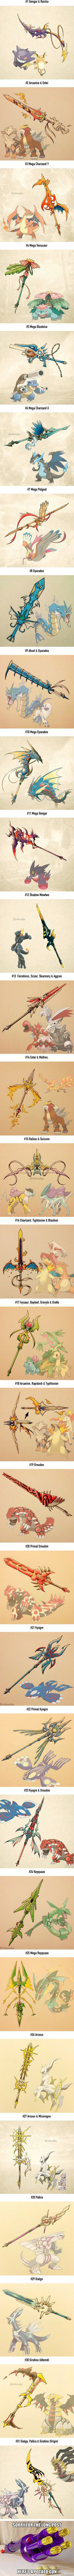 Artist Turns 31 Pokémon Into Poké-Weapon (By Rico Busalpa)